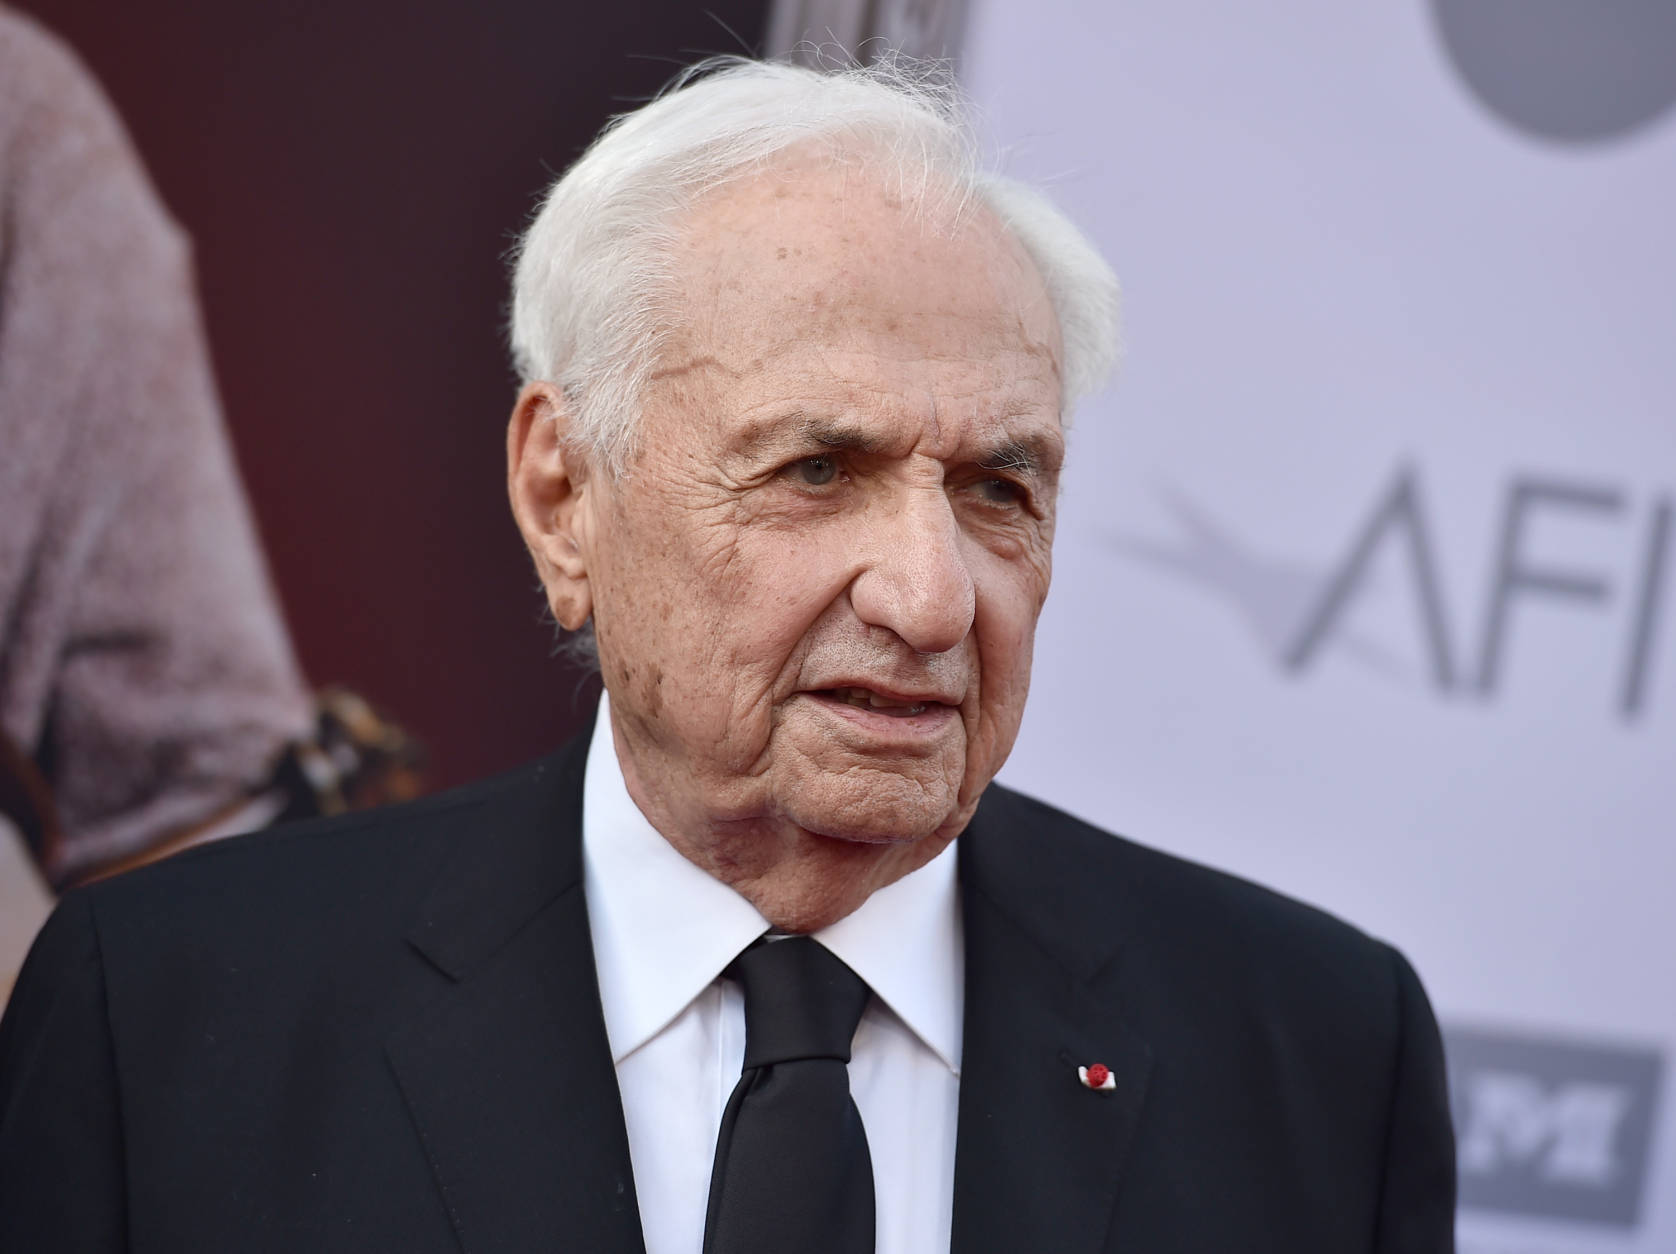 Frank Gehry arrives at the 43rd AFI Lifetime Achievement Award Tribute Gala at the Dolby Theatre on Thursday, June 4, 2015, in Los Angeles. (Photo by Jordan Strauss/Invision/AP)